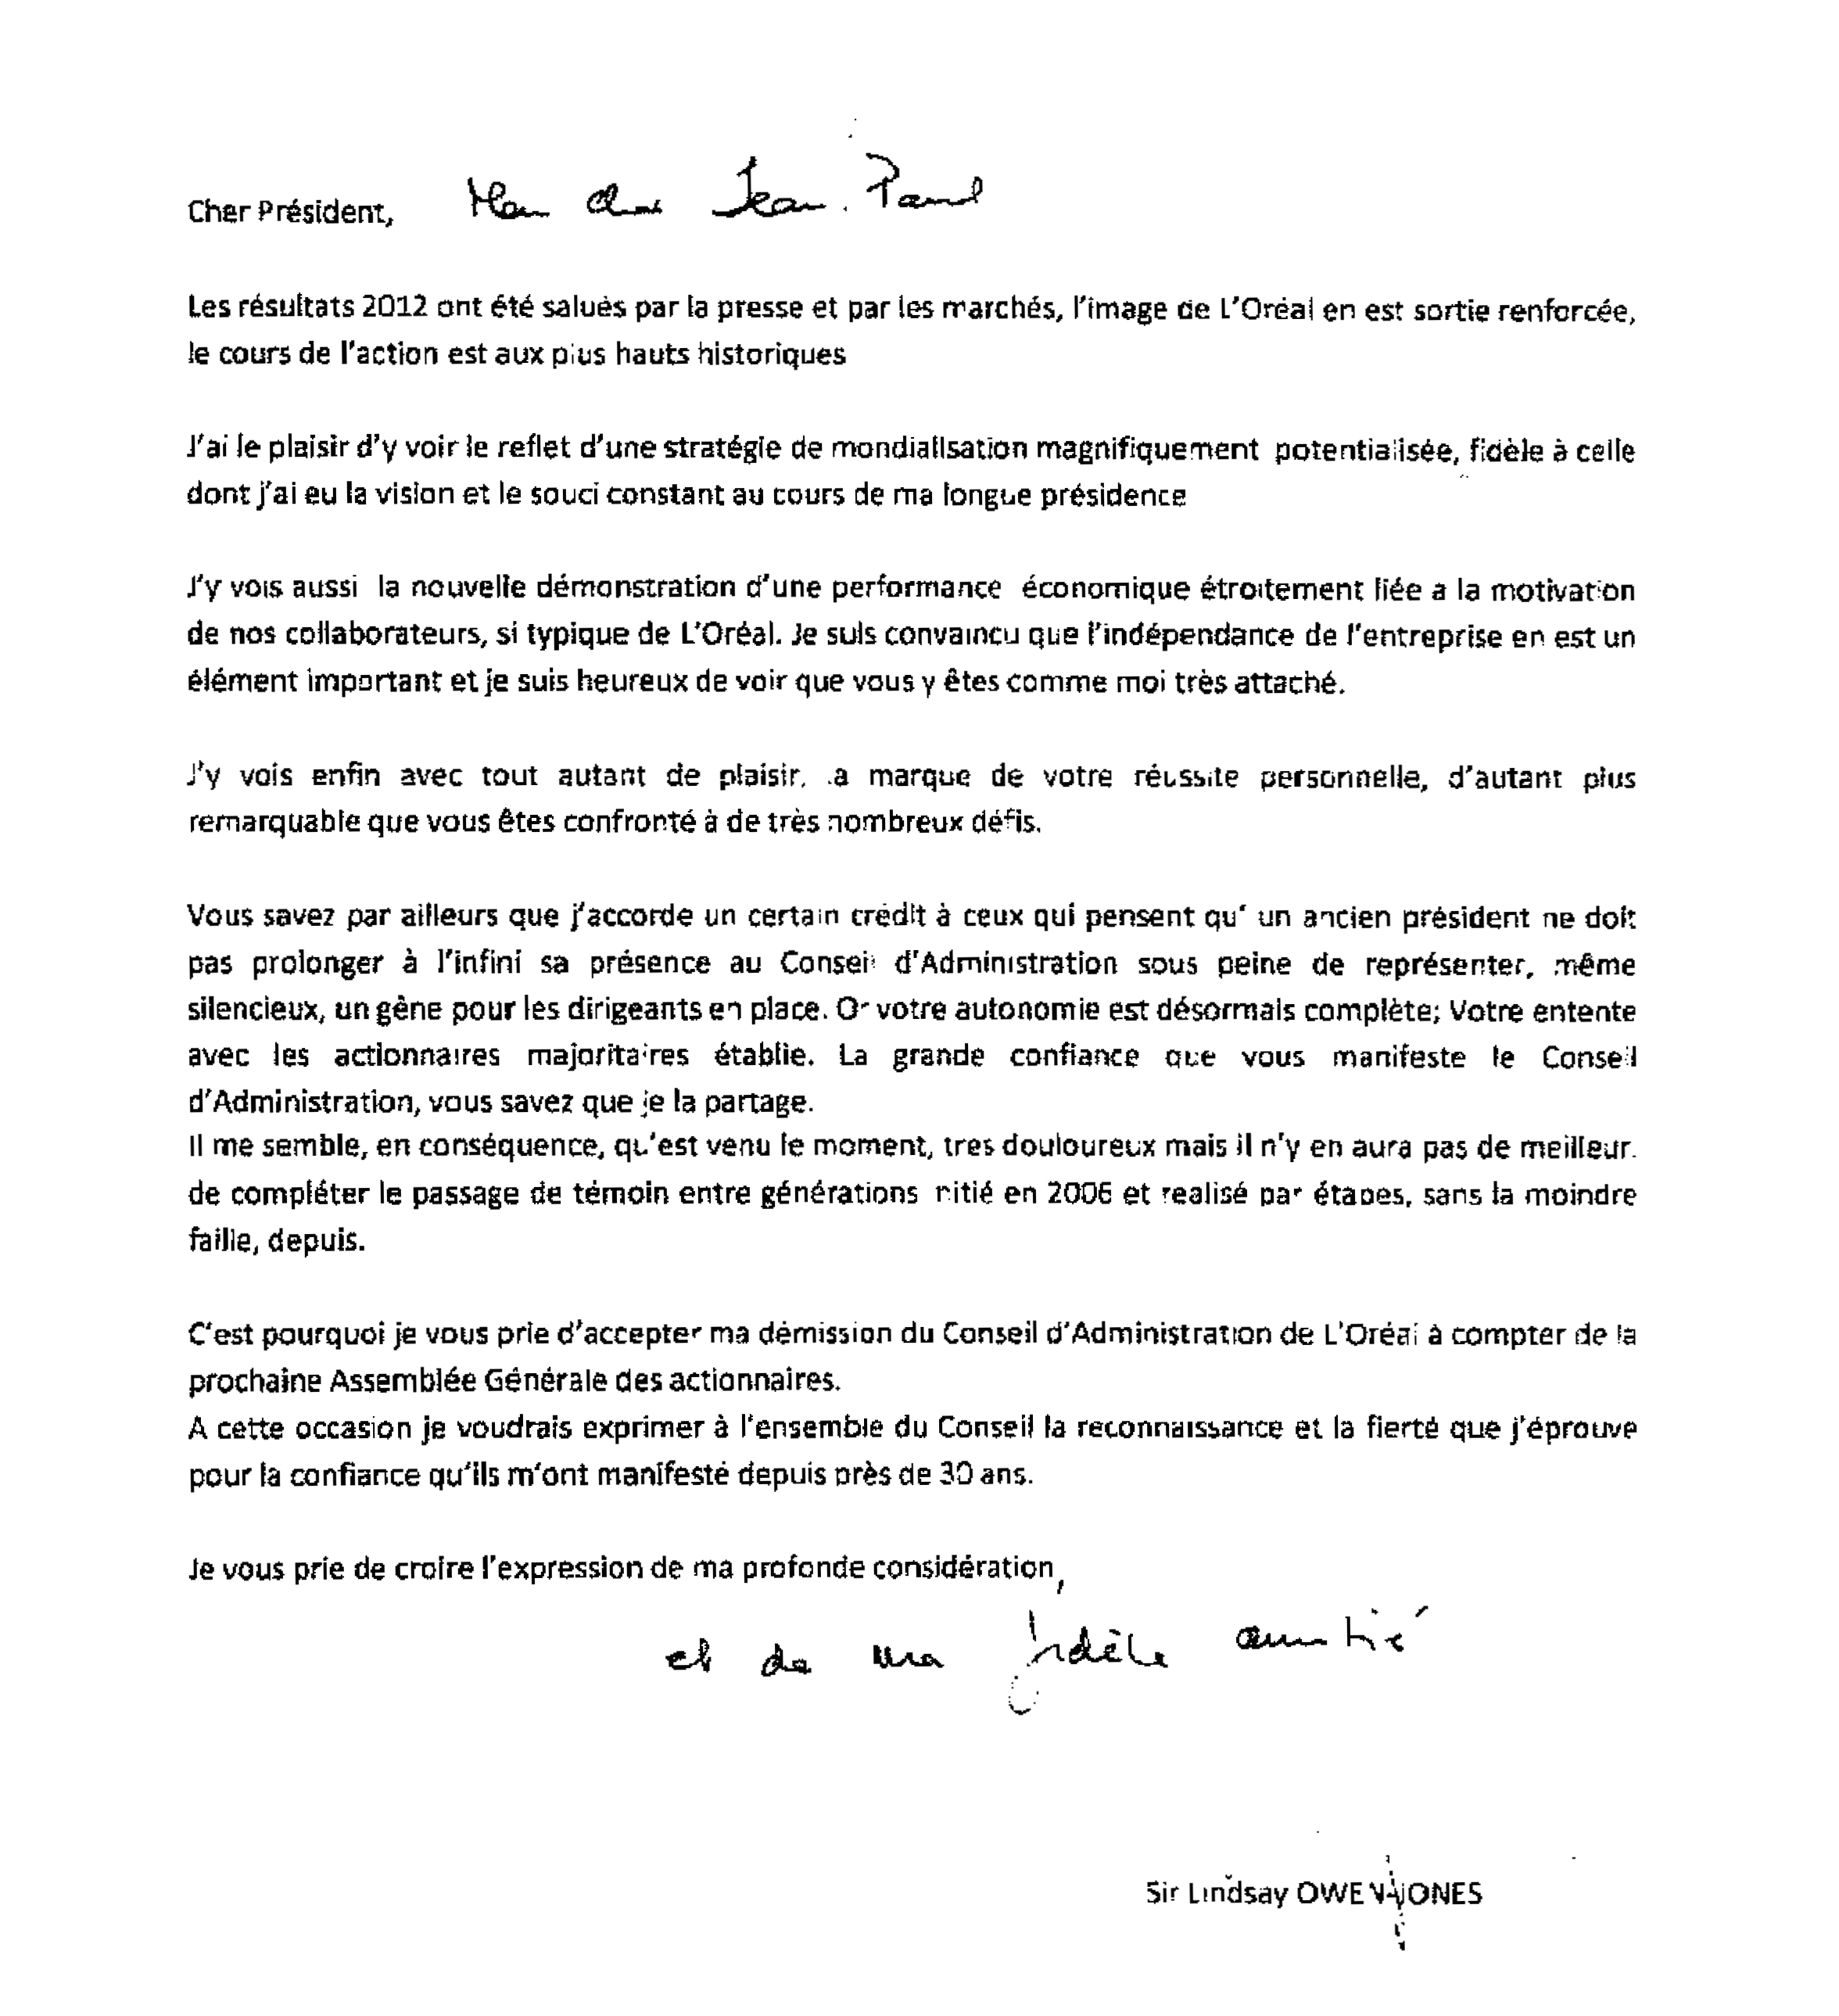 Letter sent to Mr Jean Paul Agon Chairman and CEO of L Oréal